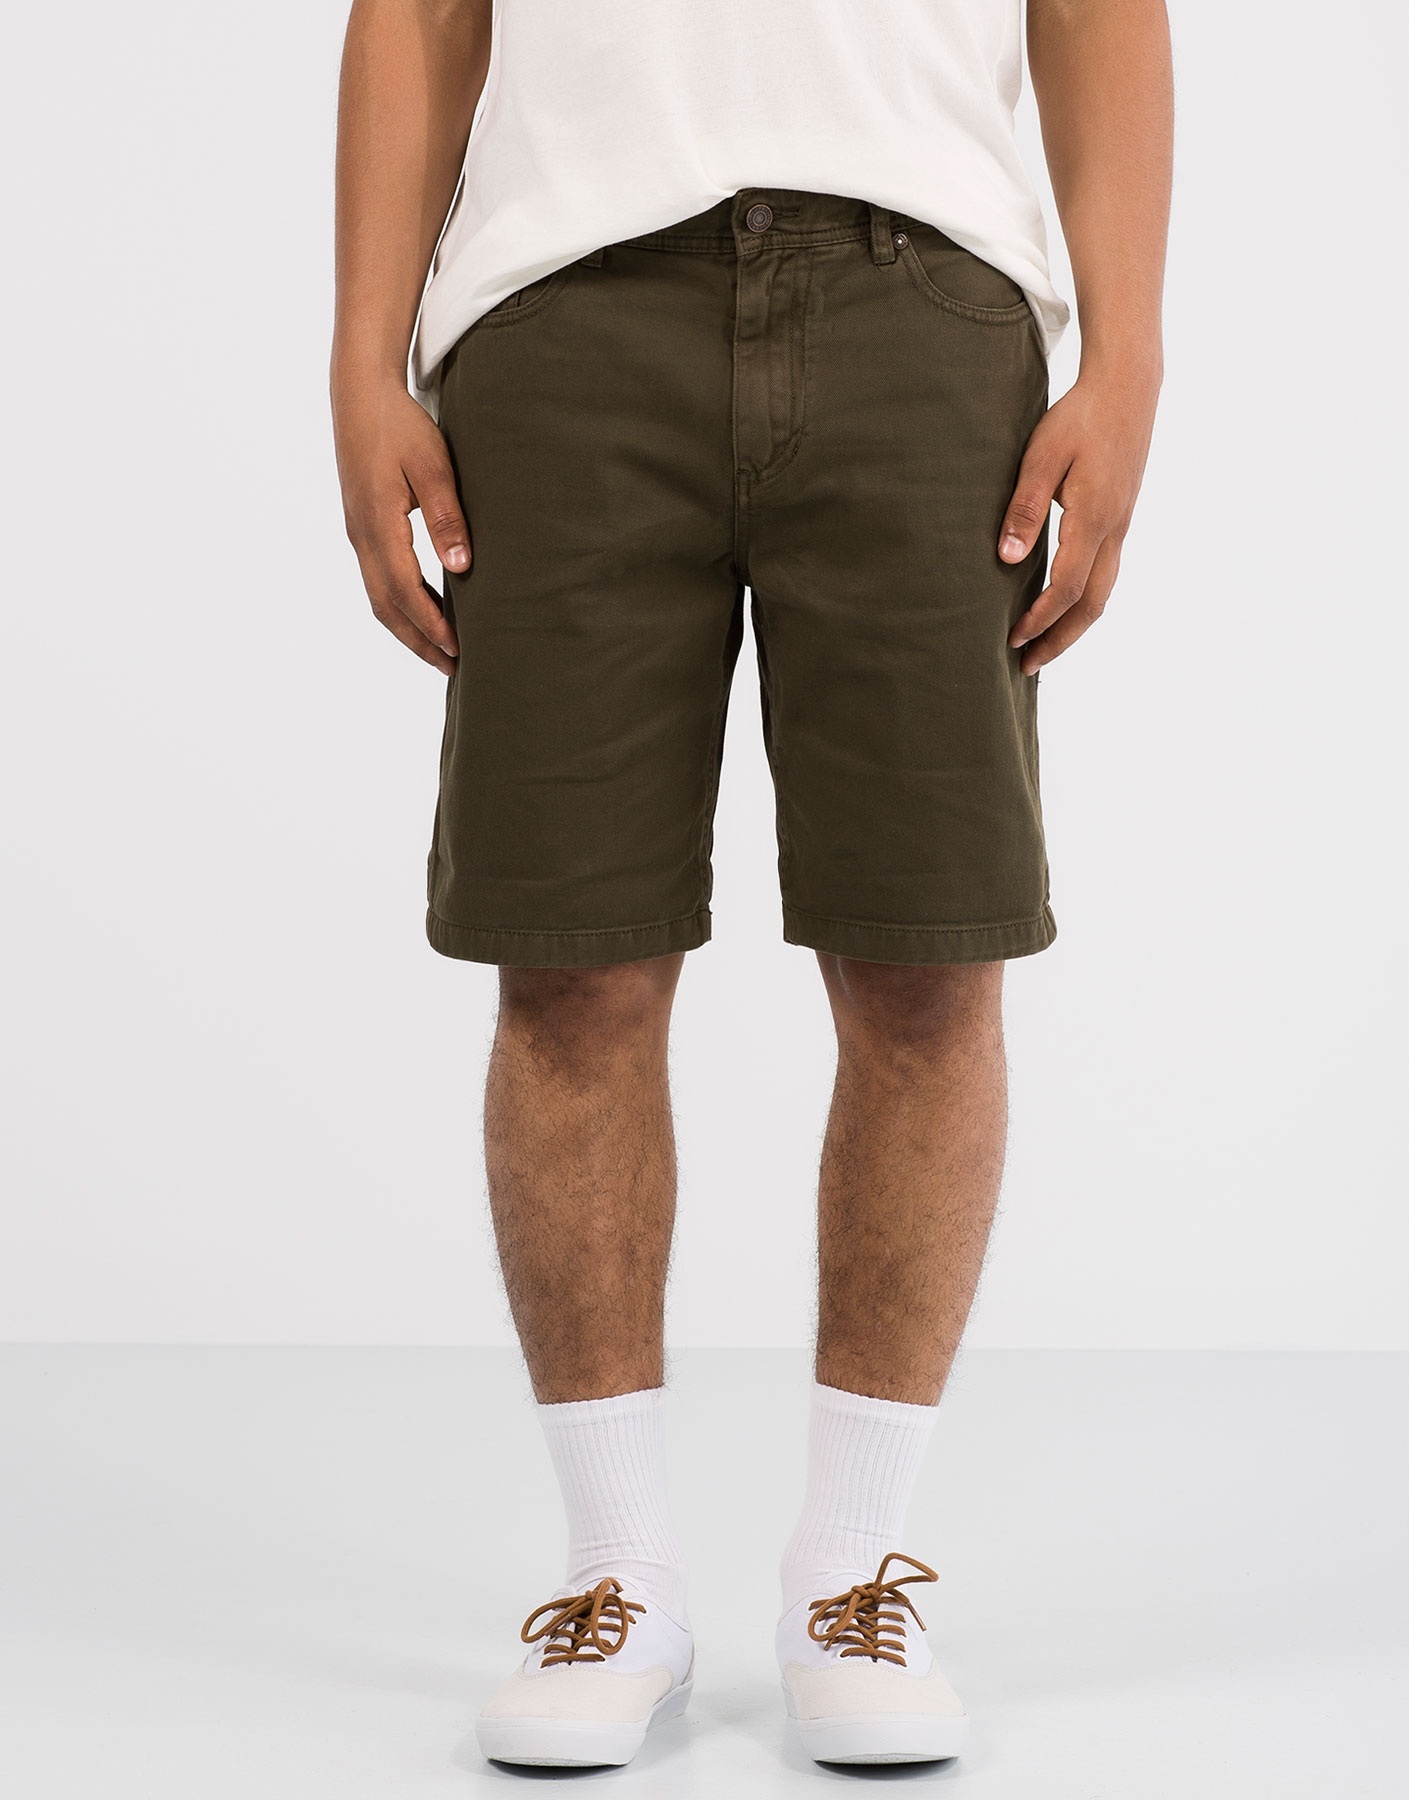 Basic 5 pocket bermuda shorts